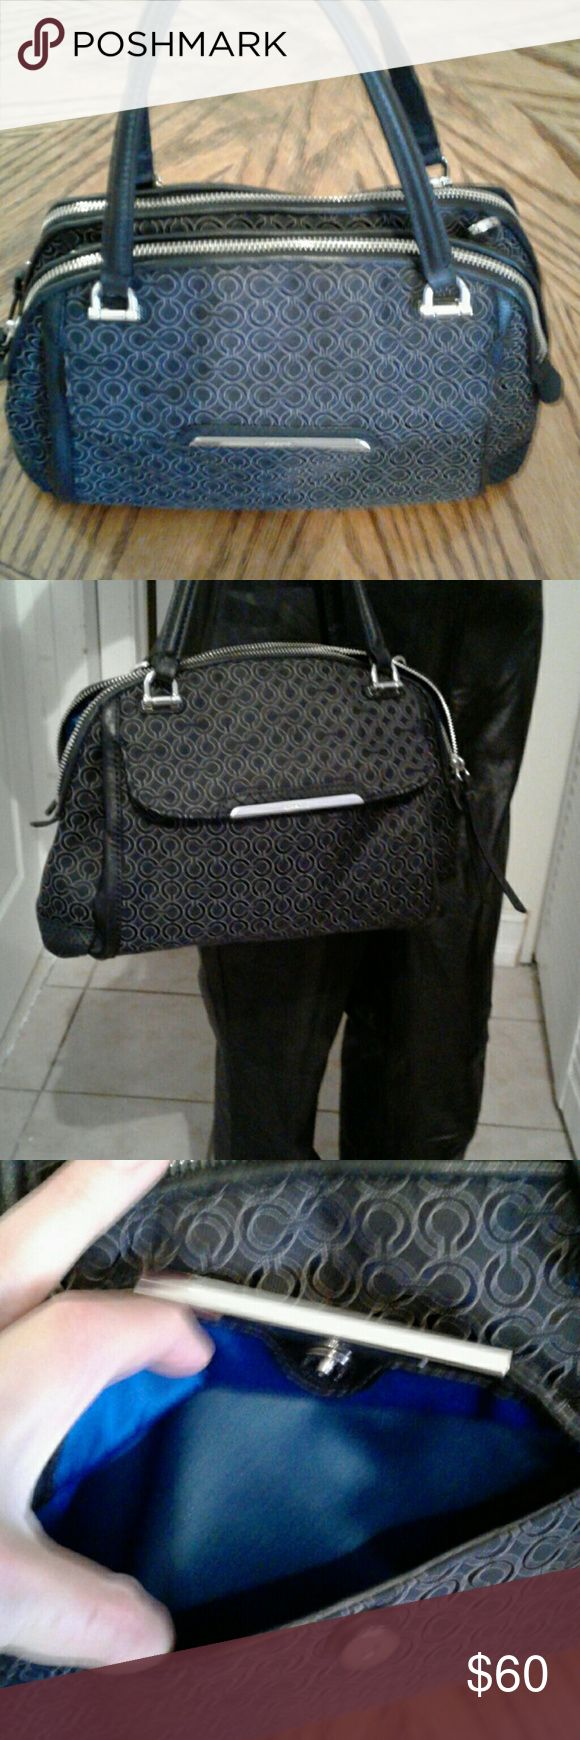 Coach Bag Immaculate Condition Might Have Used Once